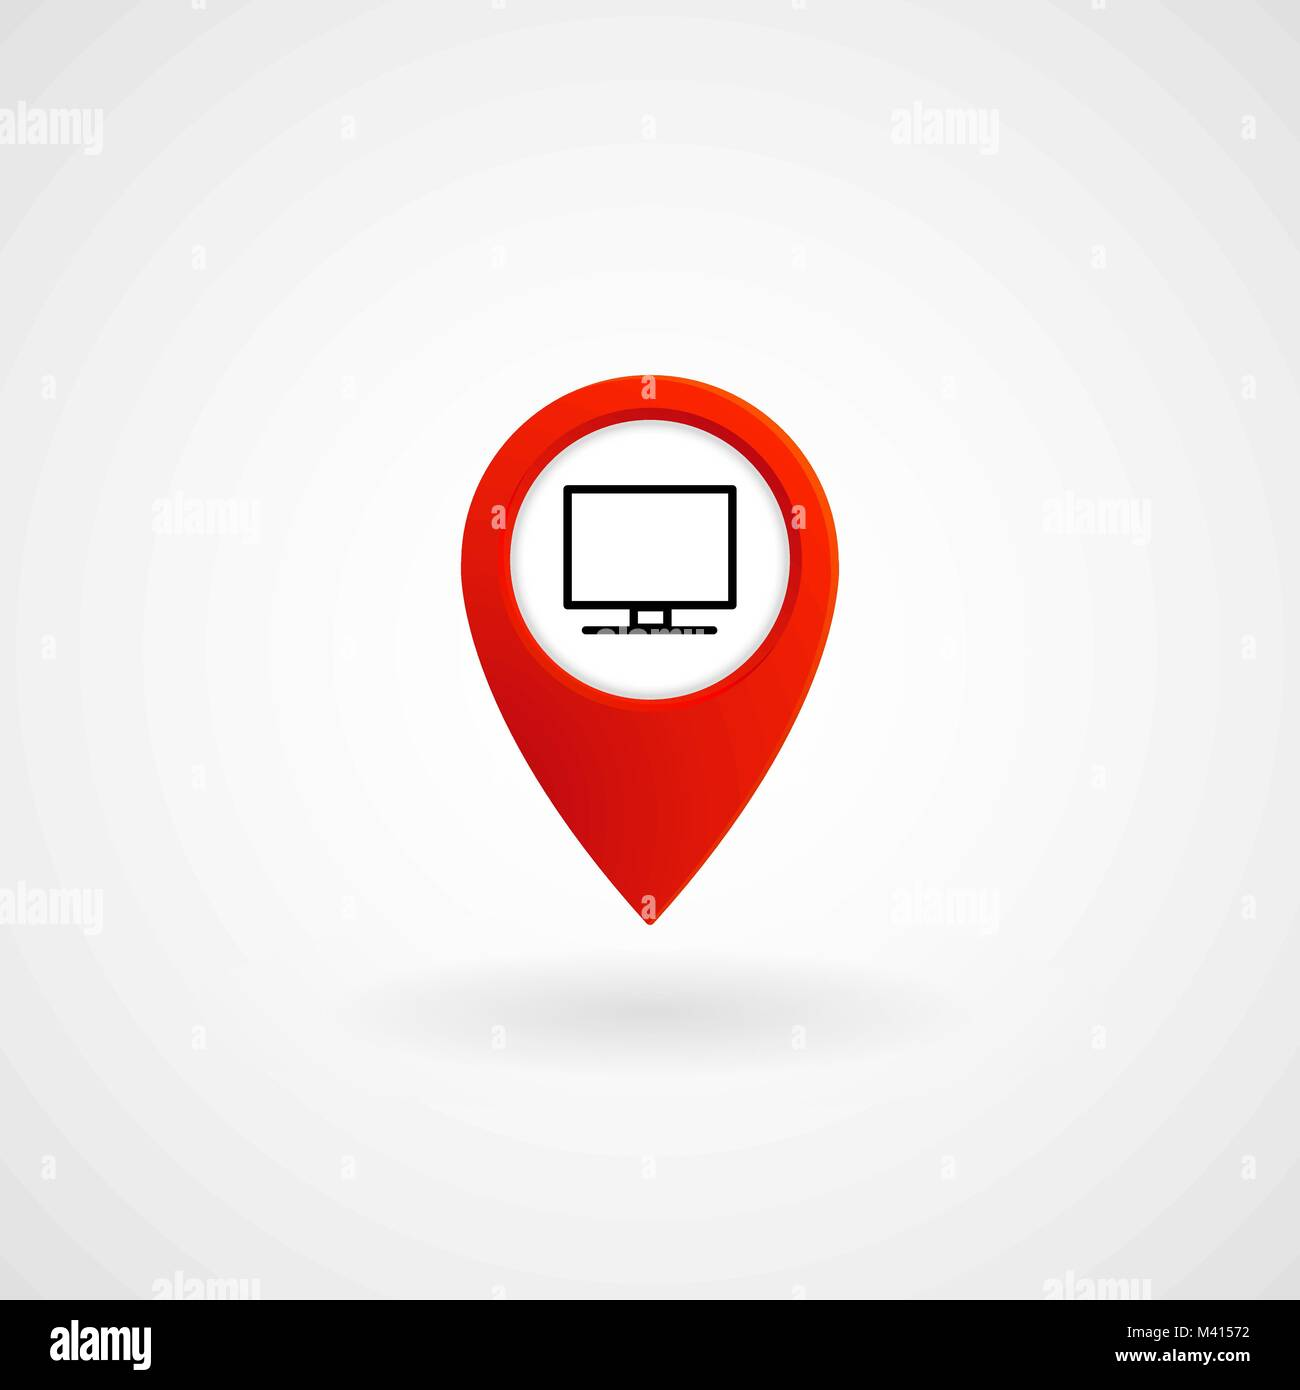 Red Location Icon for Computer Center, Vector, Illustration, Eps File Stock Vector